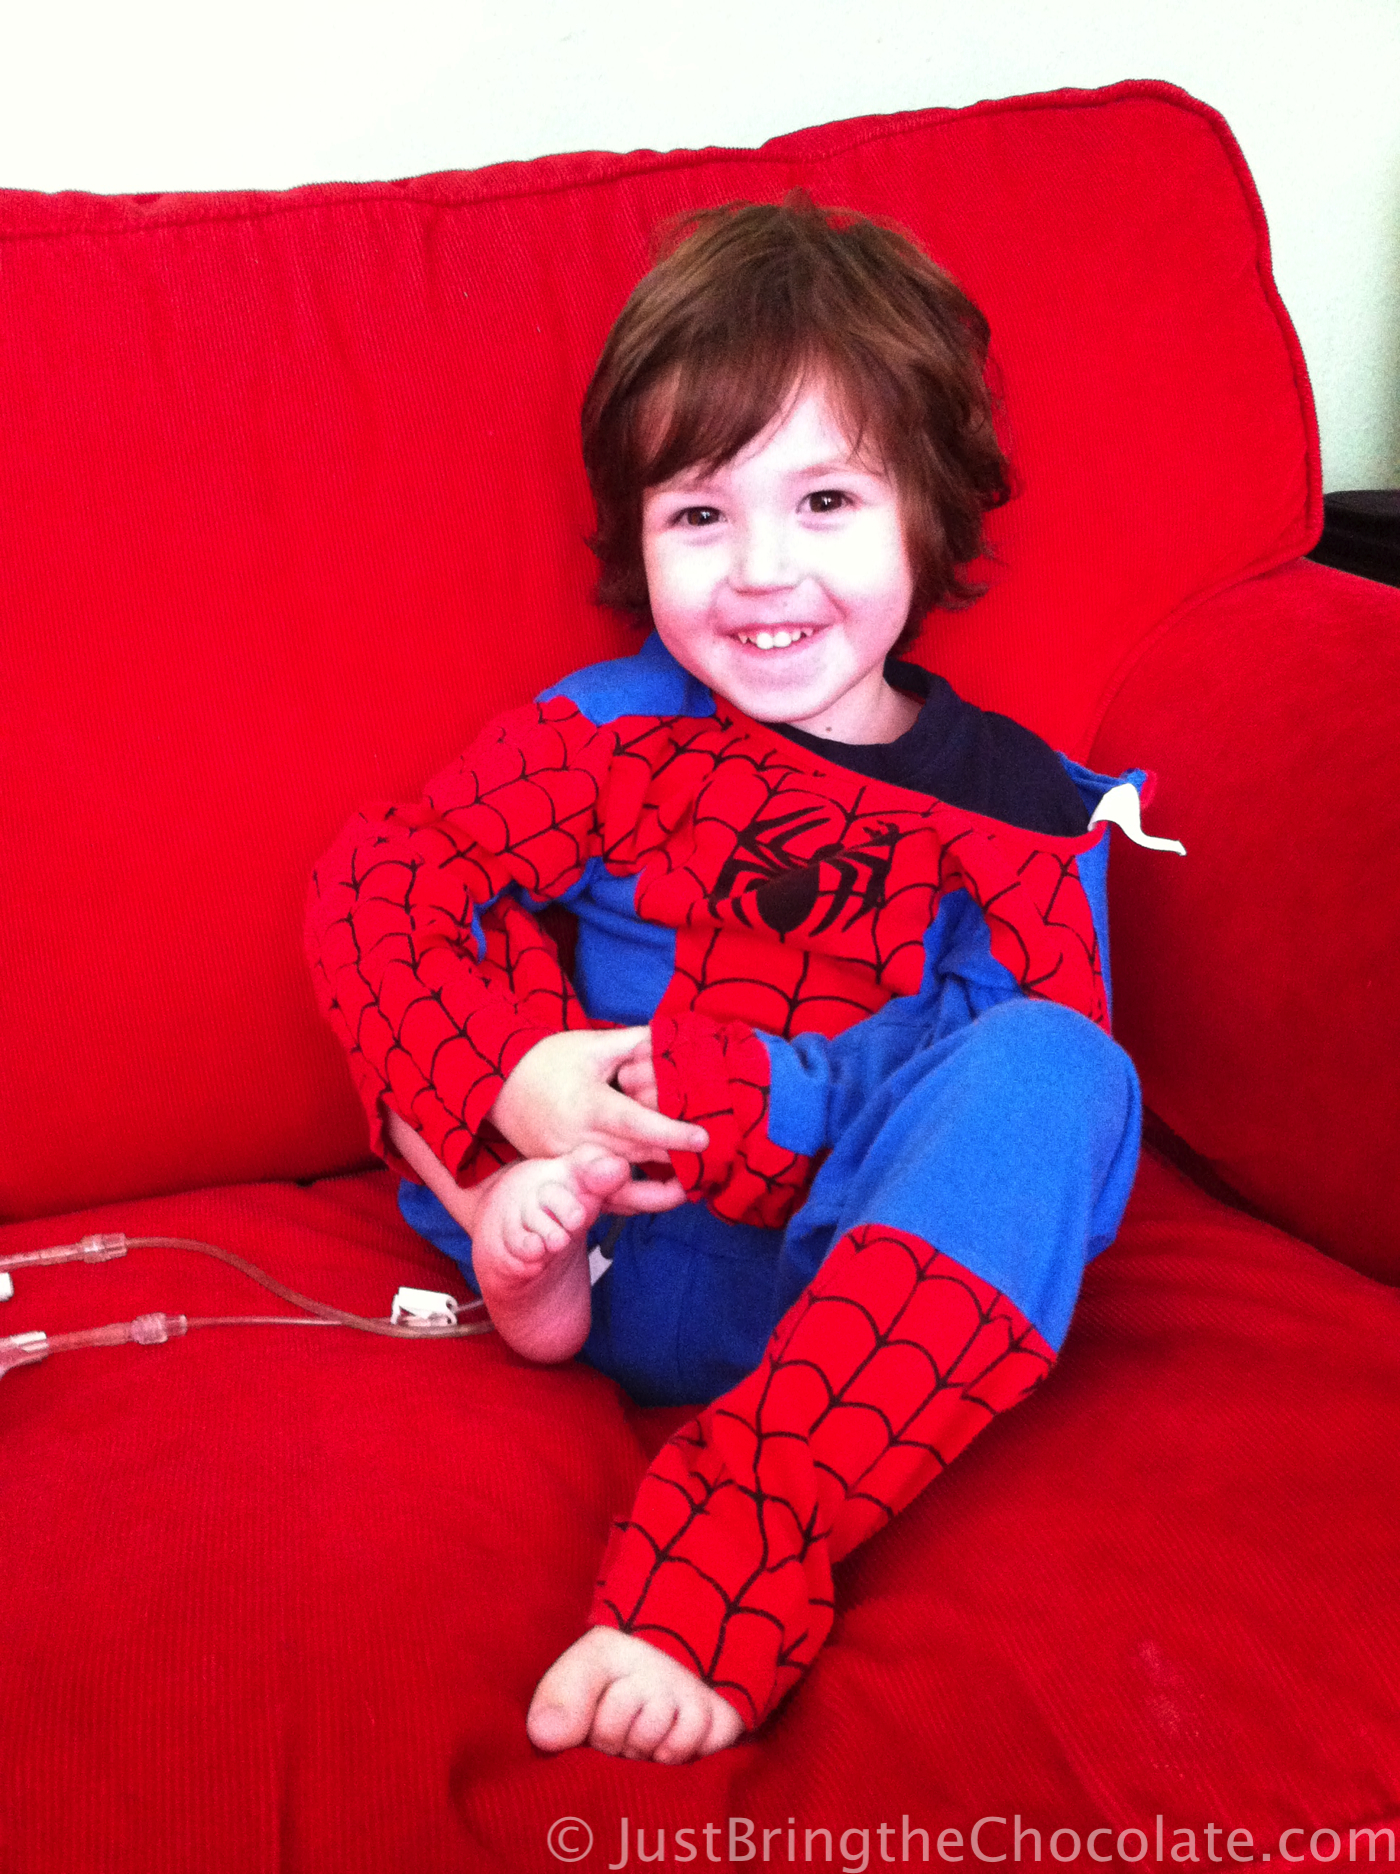 Dominic dressed as spiderman